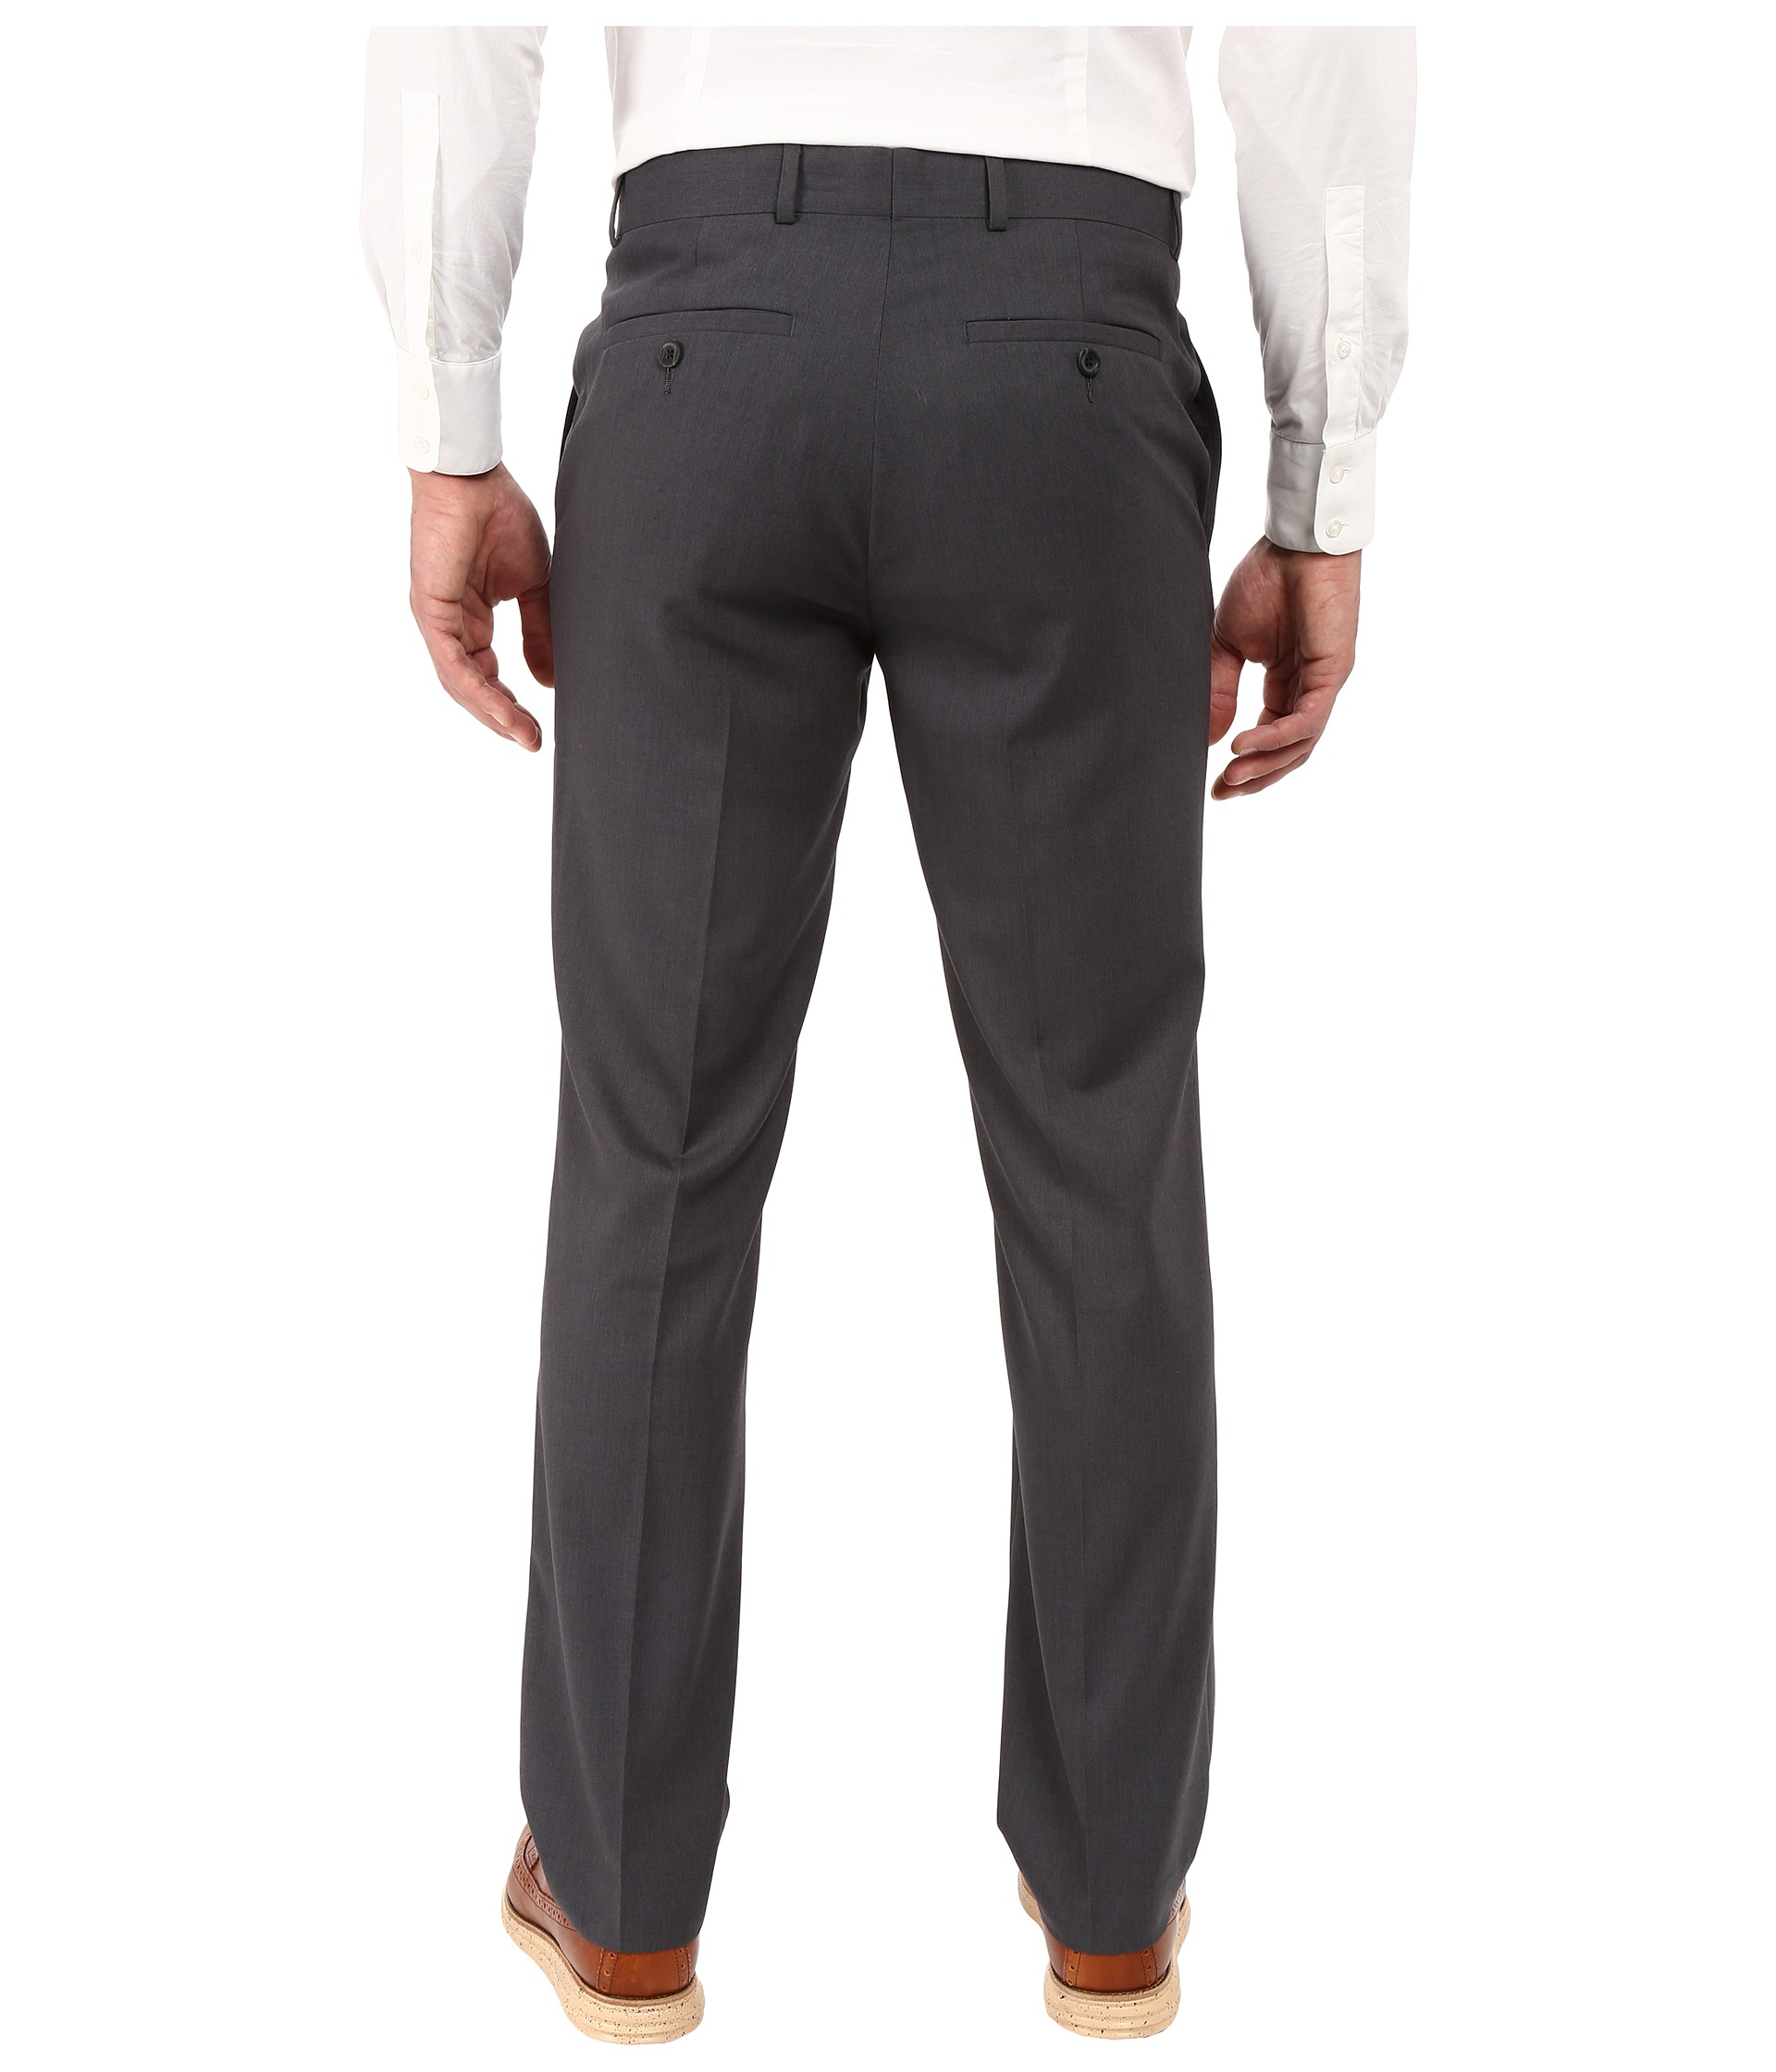 30X36 Mens Dress Pants - White Pants 2016